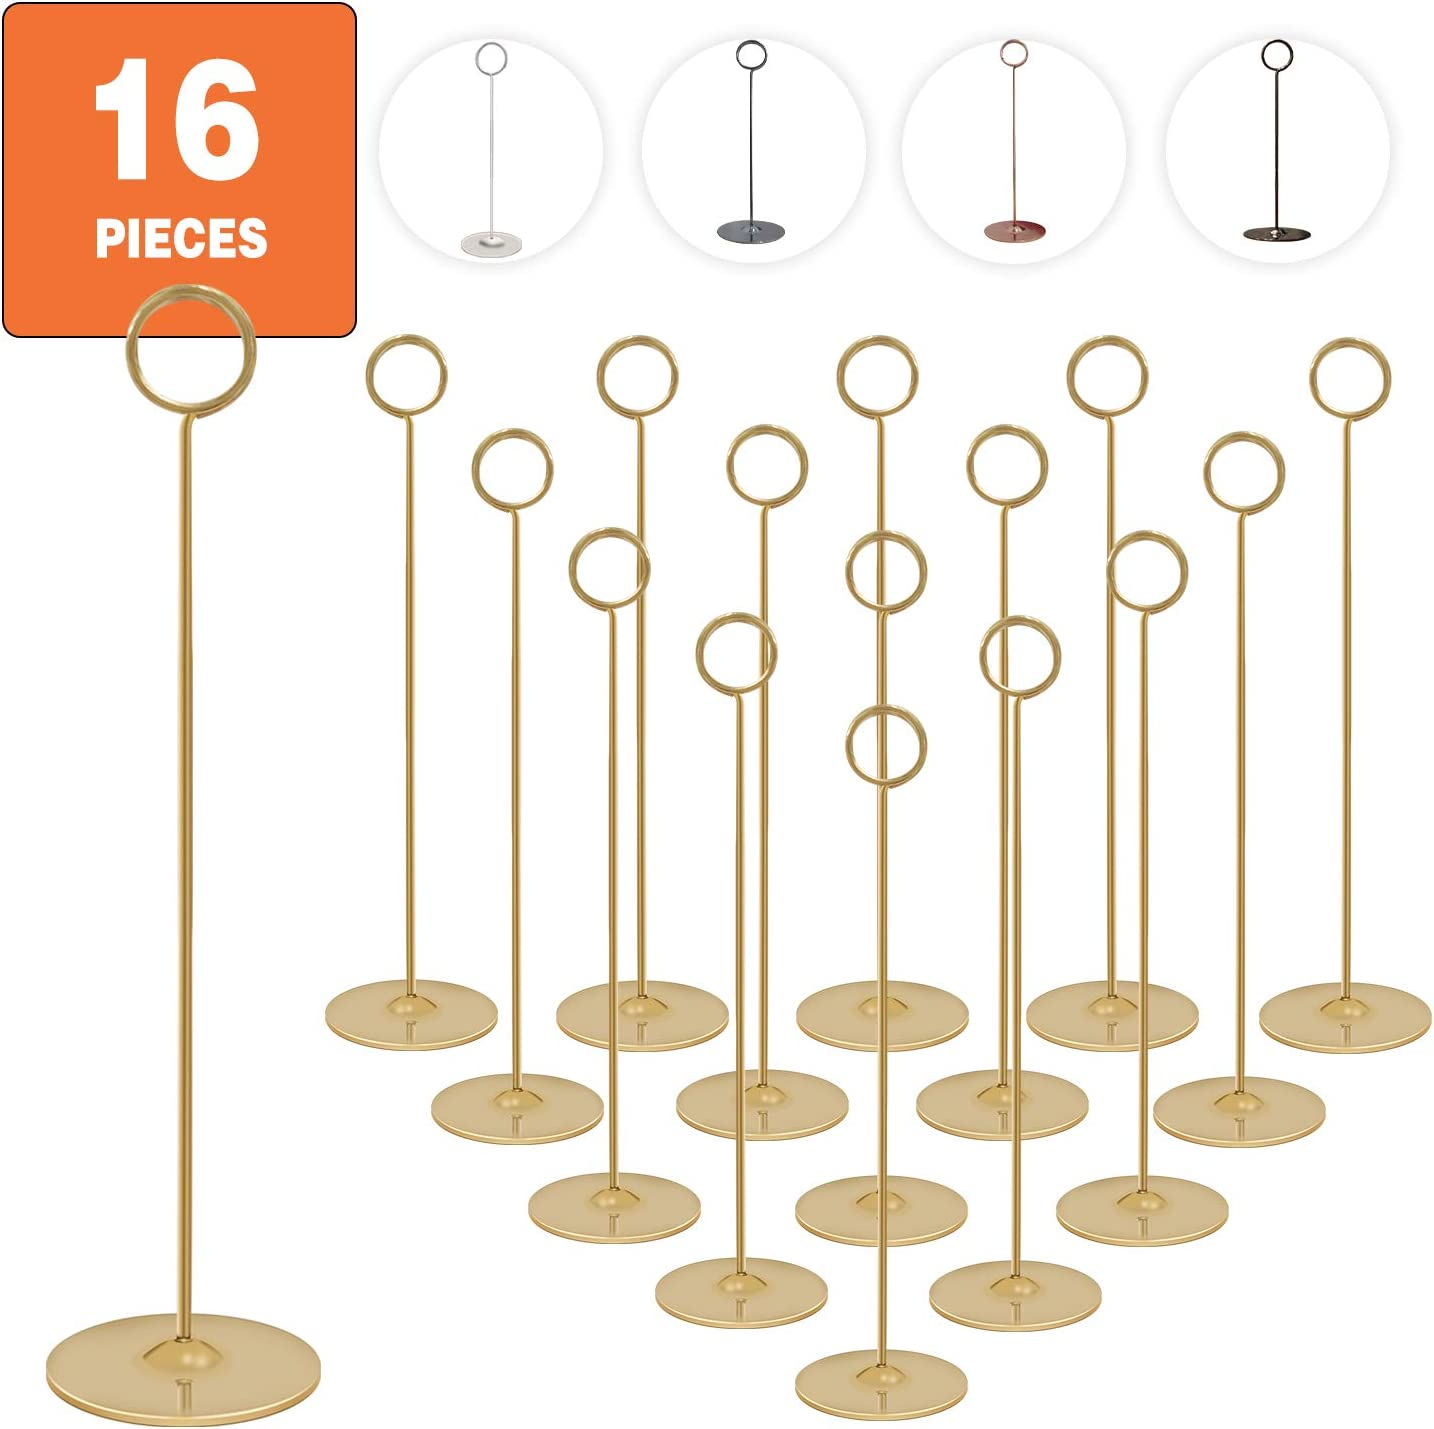 Silver,Pack of 24 HOHIYA Table Top Wire Place Card Holder Stand Memo Note Recipe Centerpieces Number Dinner Home Party Wedding Birthday Favor Restaurants Decoration